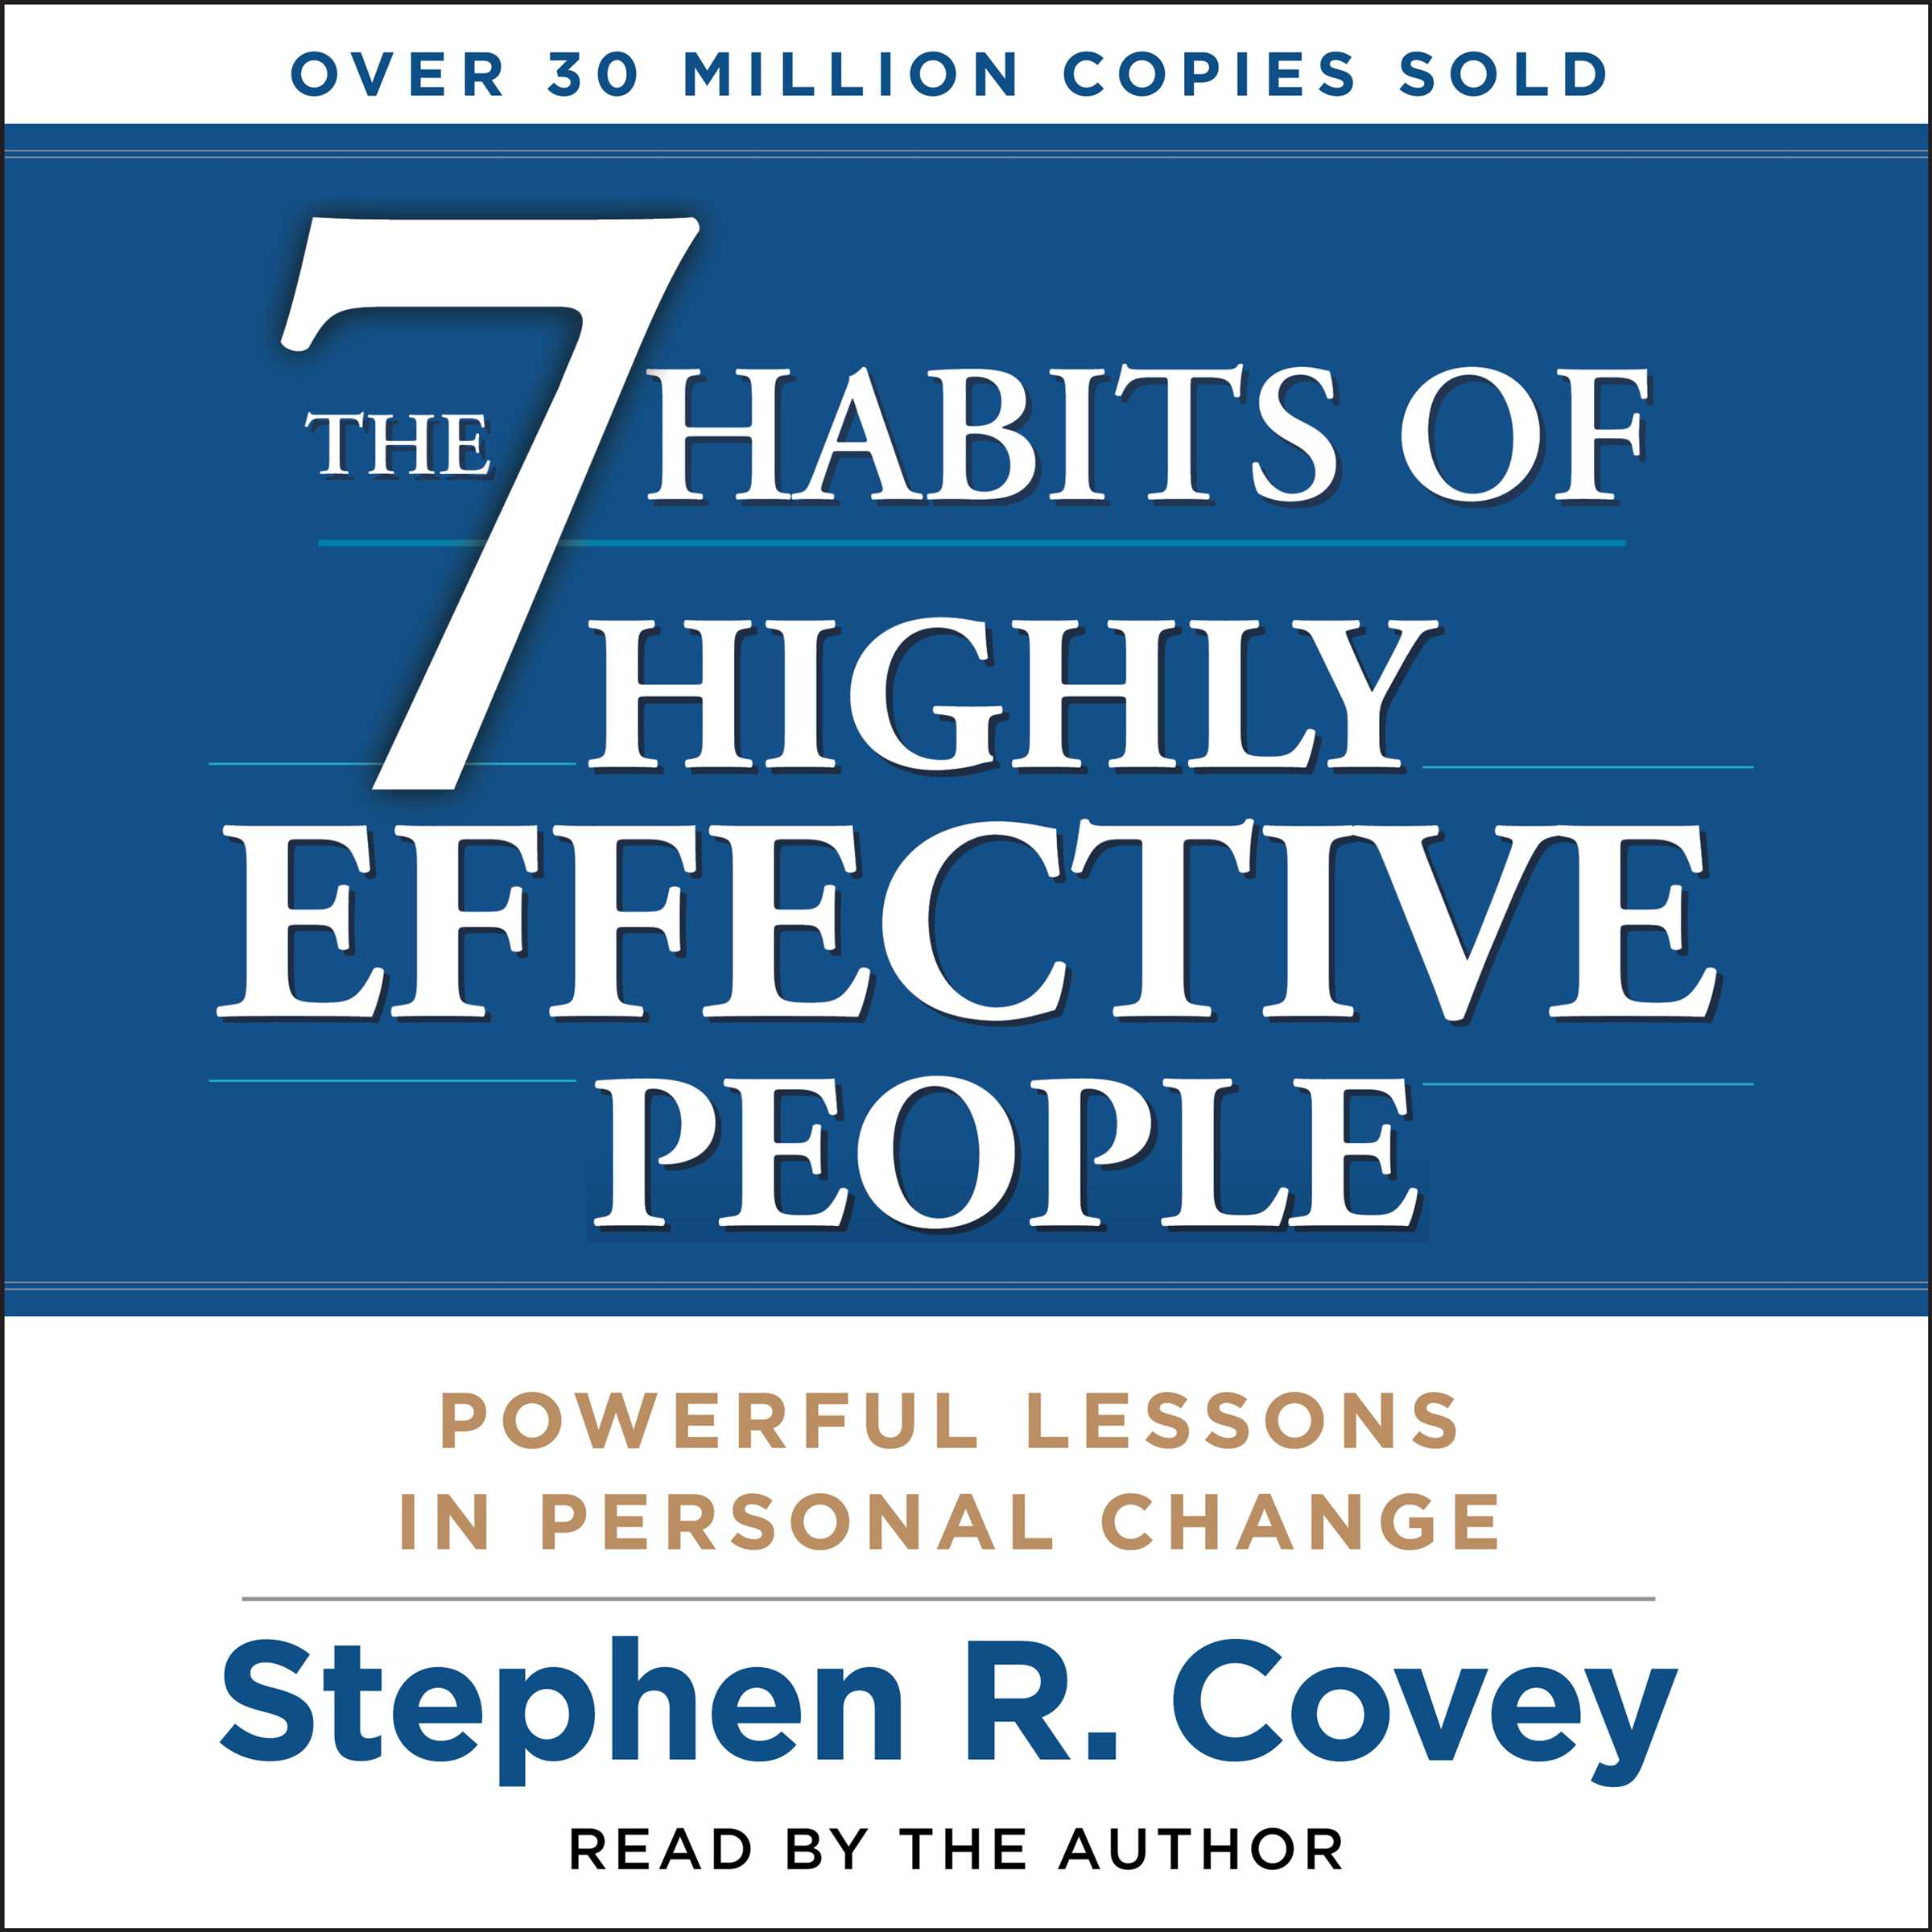 Book Cover Image (jpg): The 7 Habits of Highly Effective People